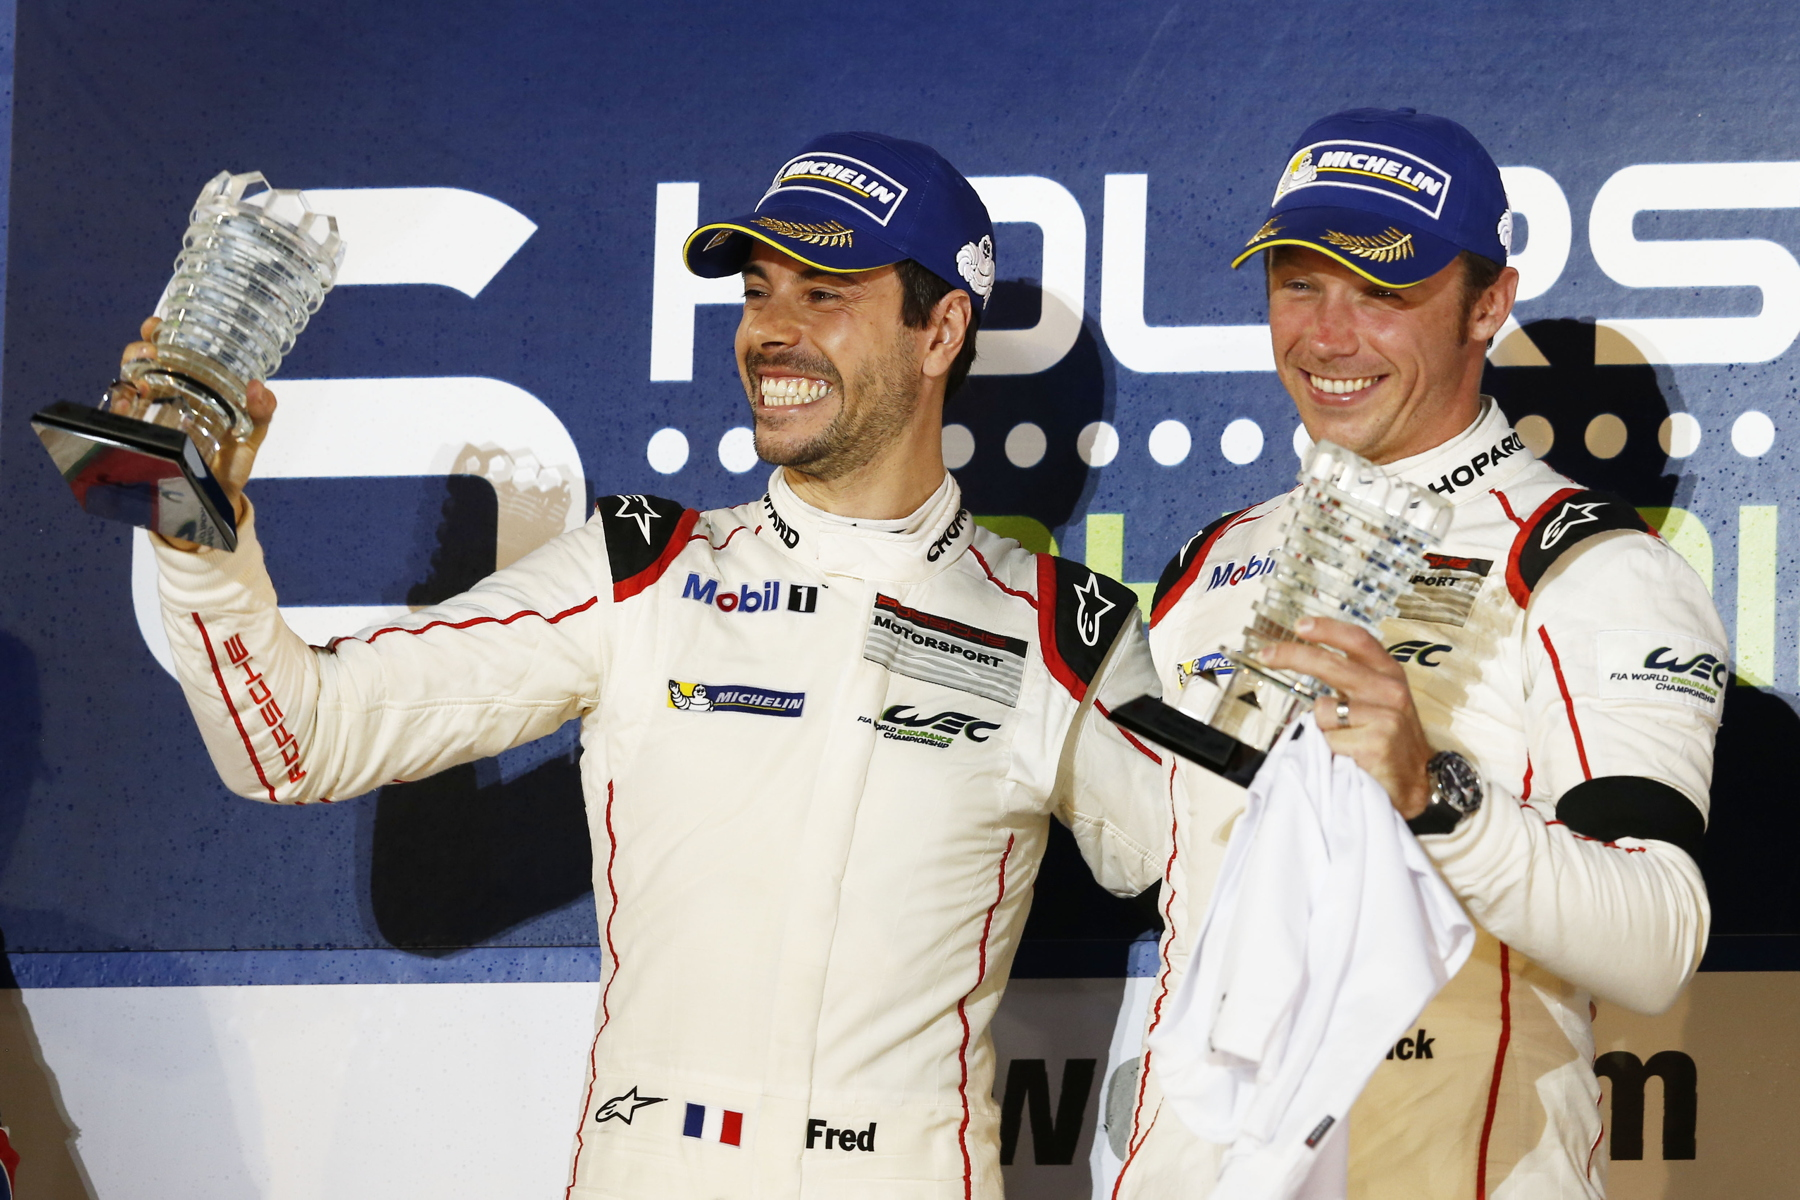 Victory in Bahrain was the first FIA WEC win for Frédéric Makowiecki (left) and Patrick Pilet (right) this season.